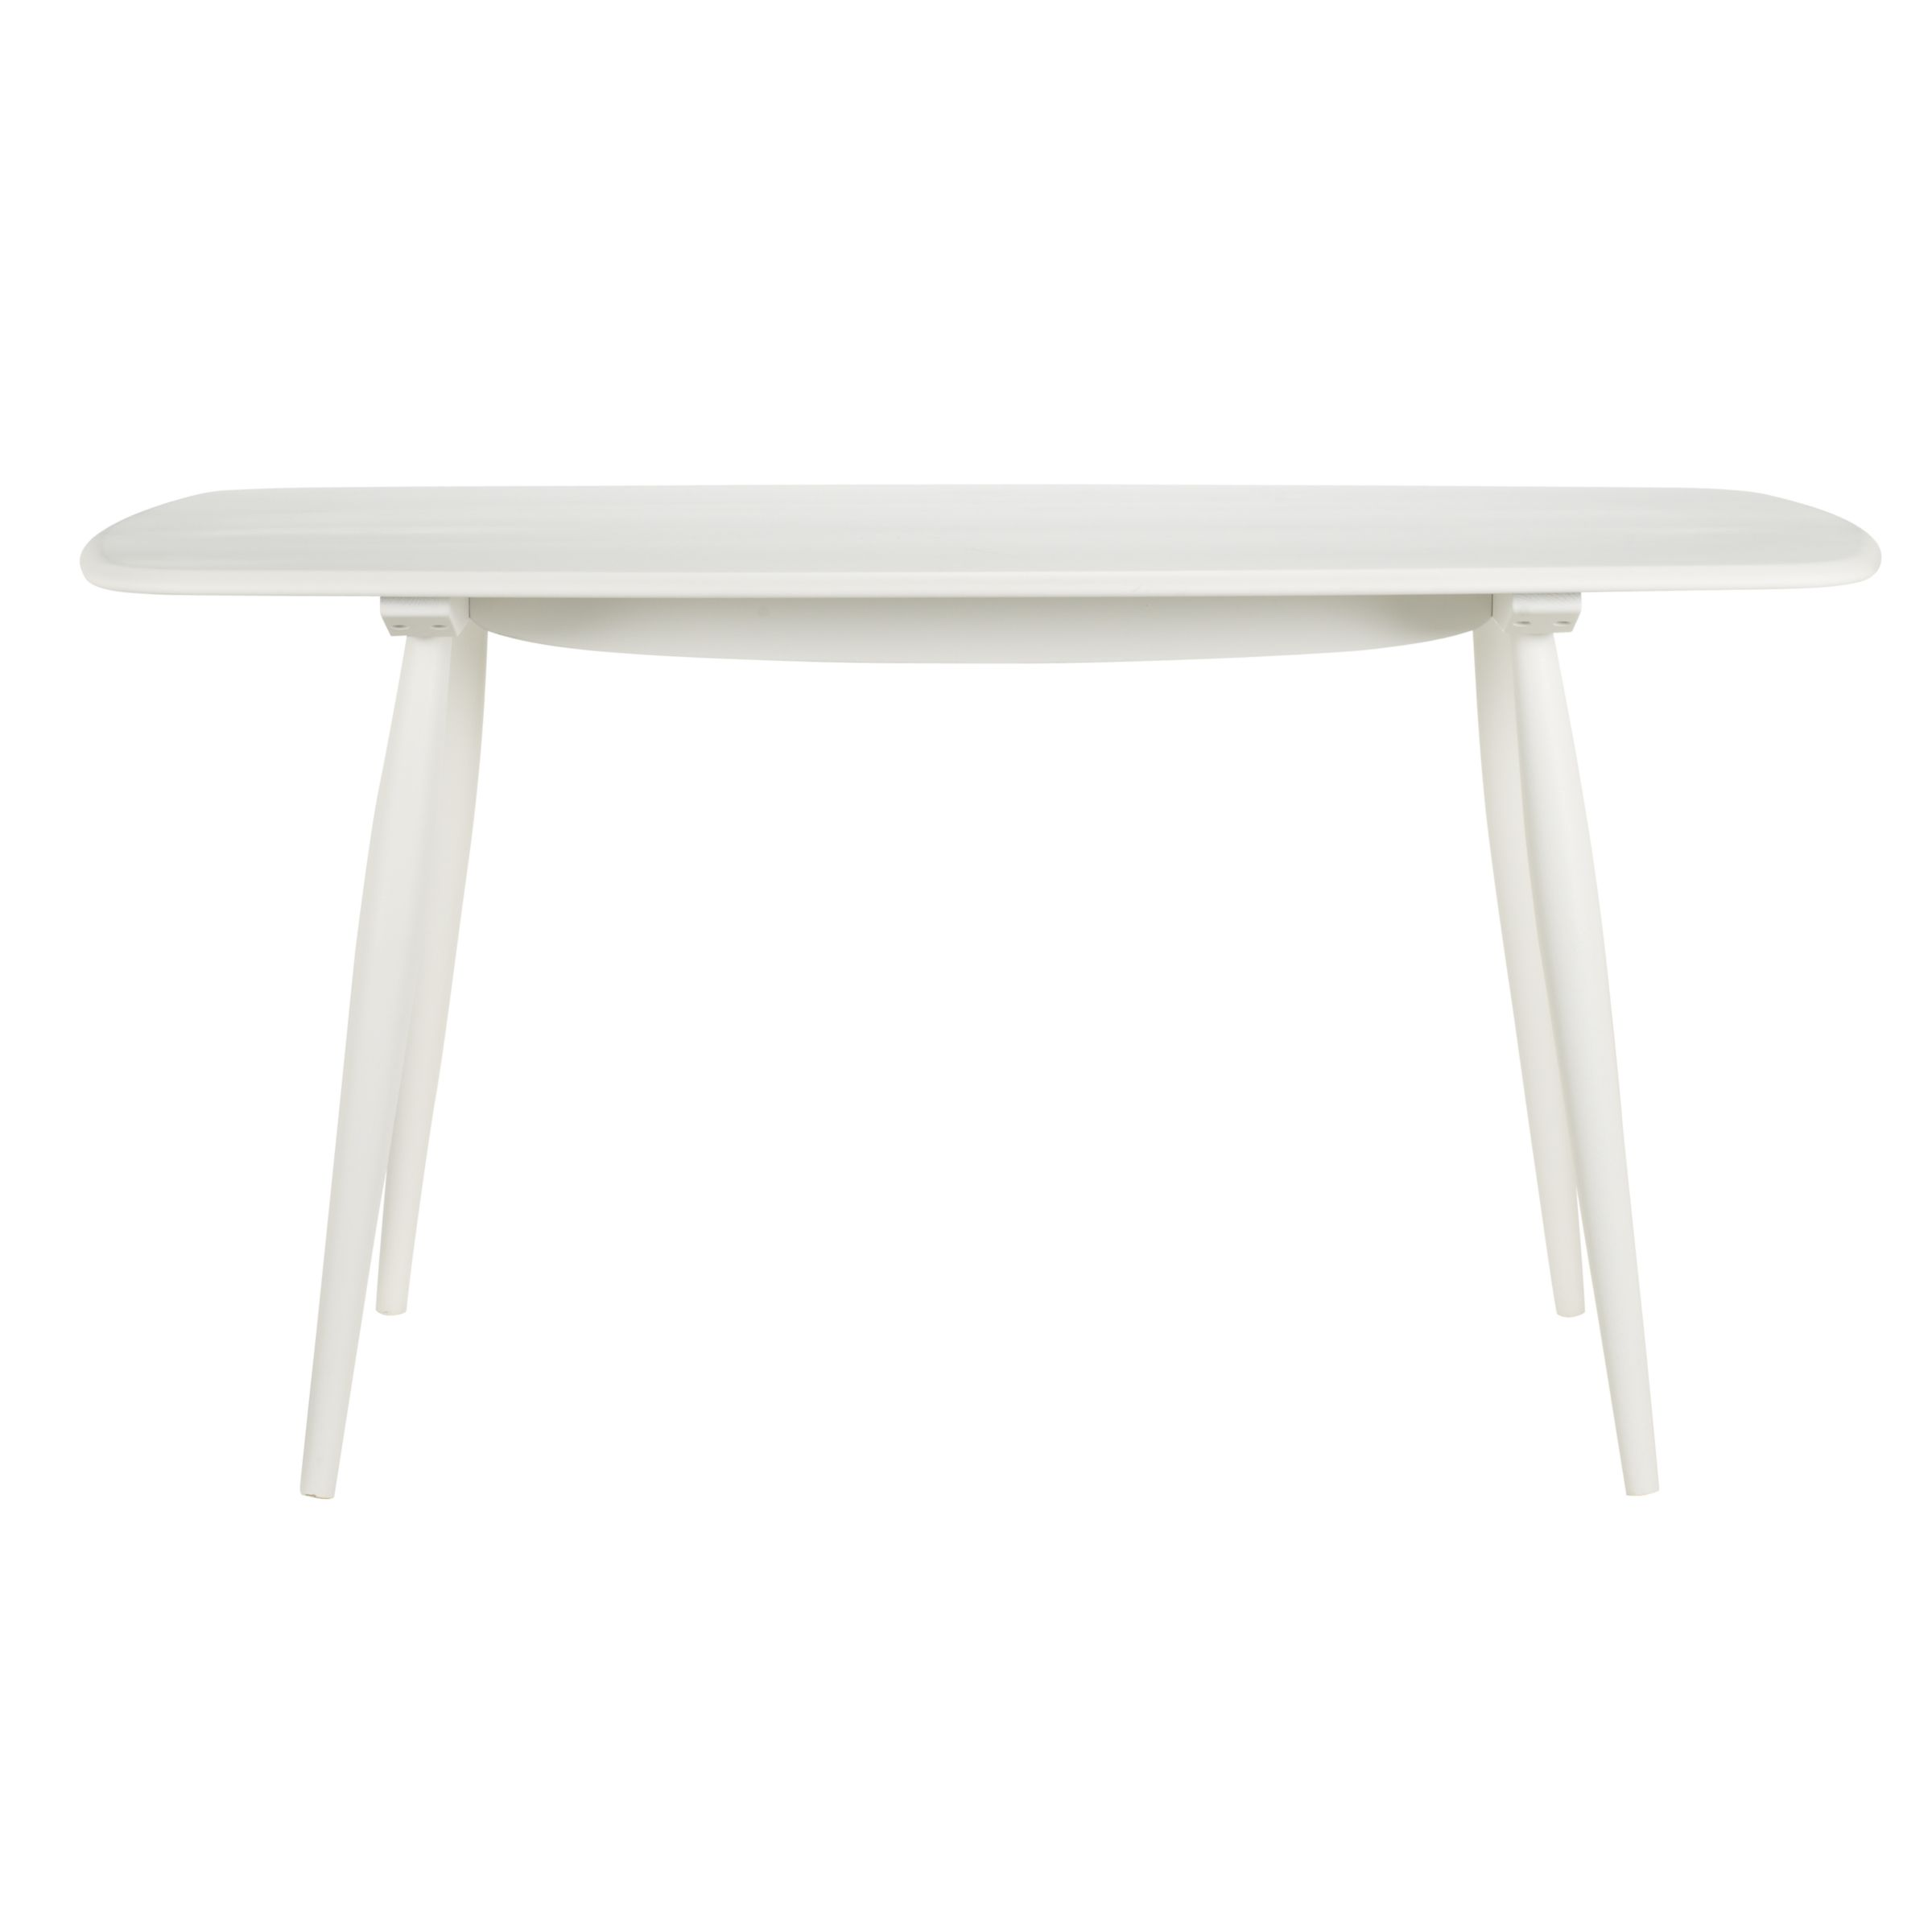 Ercol for John Lewis Chiltern Dining Table White review  : 230946695 from www.comparestoreprices.co.uk size 2400 x 2400 jpeg 56kB